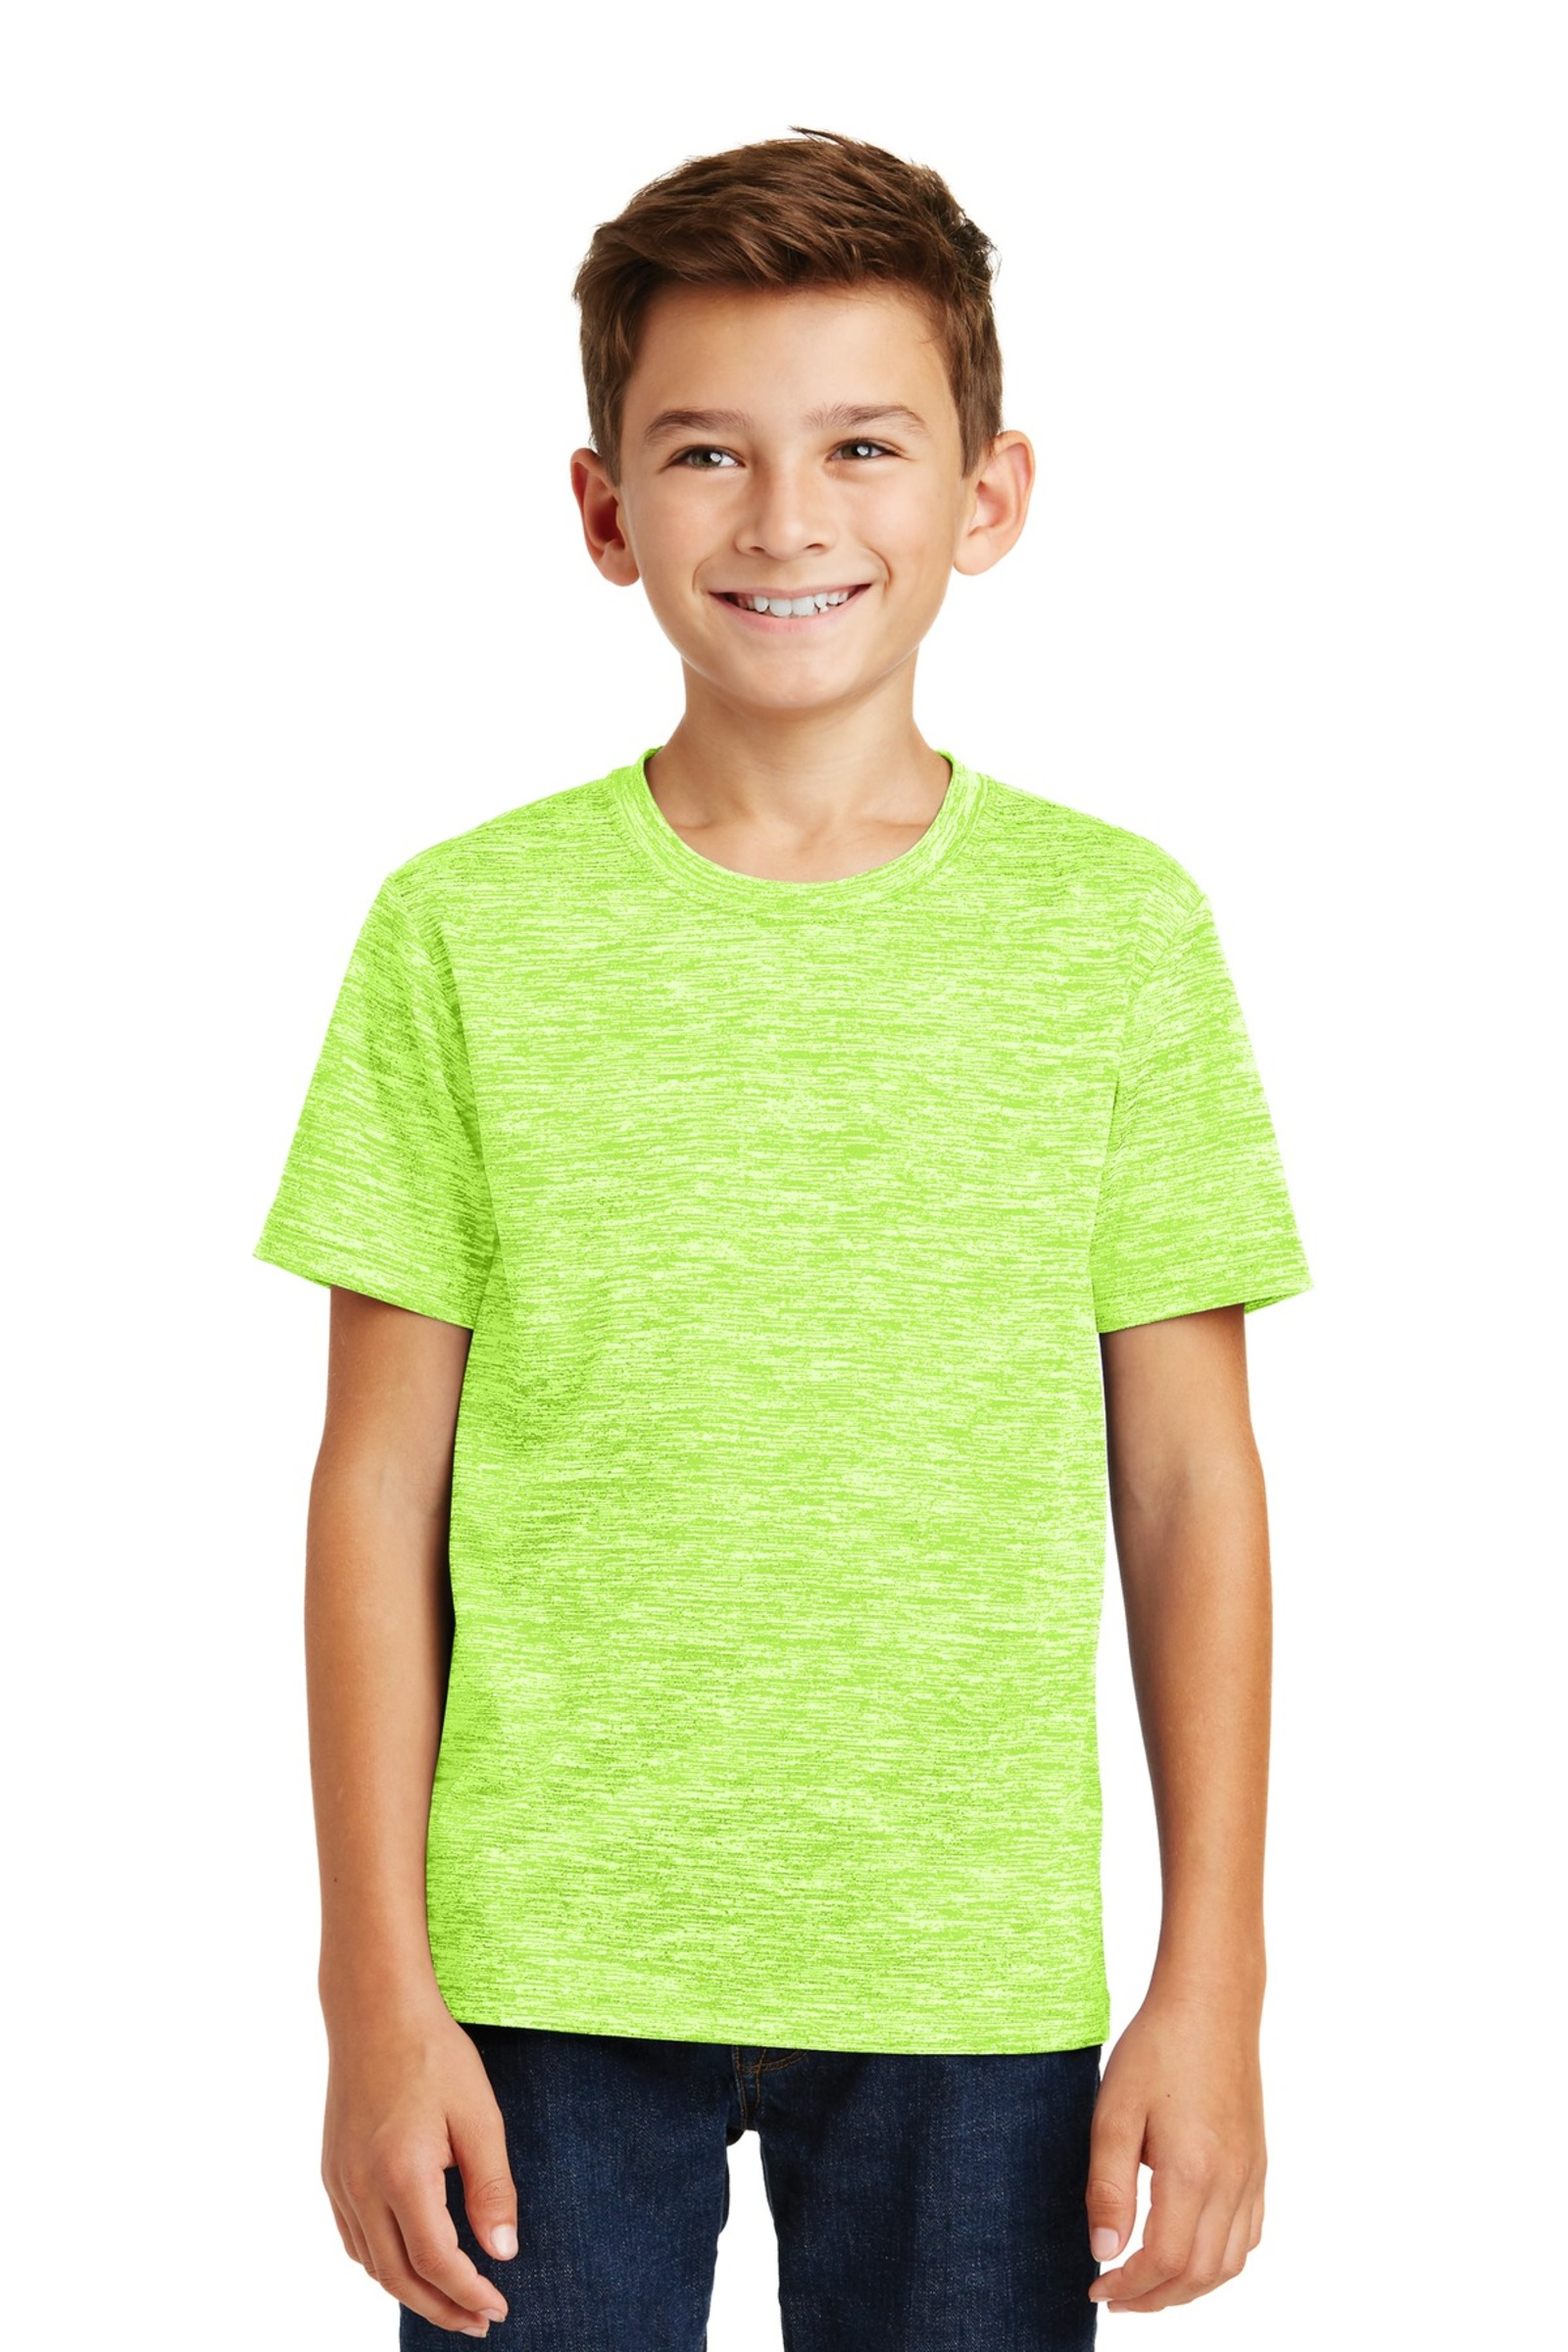 Sport-Tek Printed Youth PosiCharge Electric Heather Tee